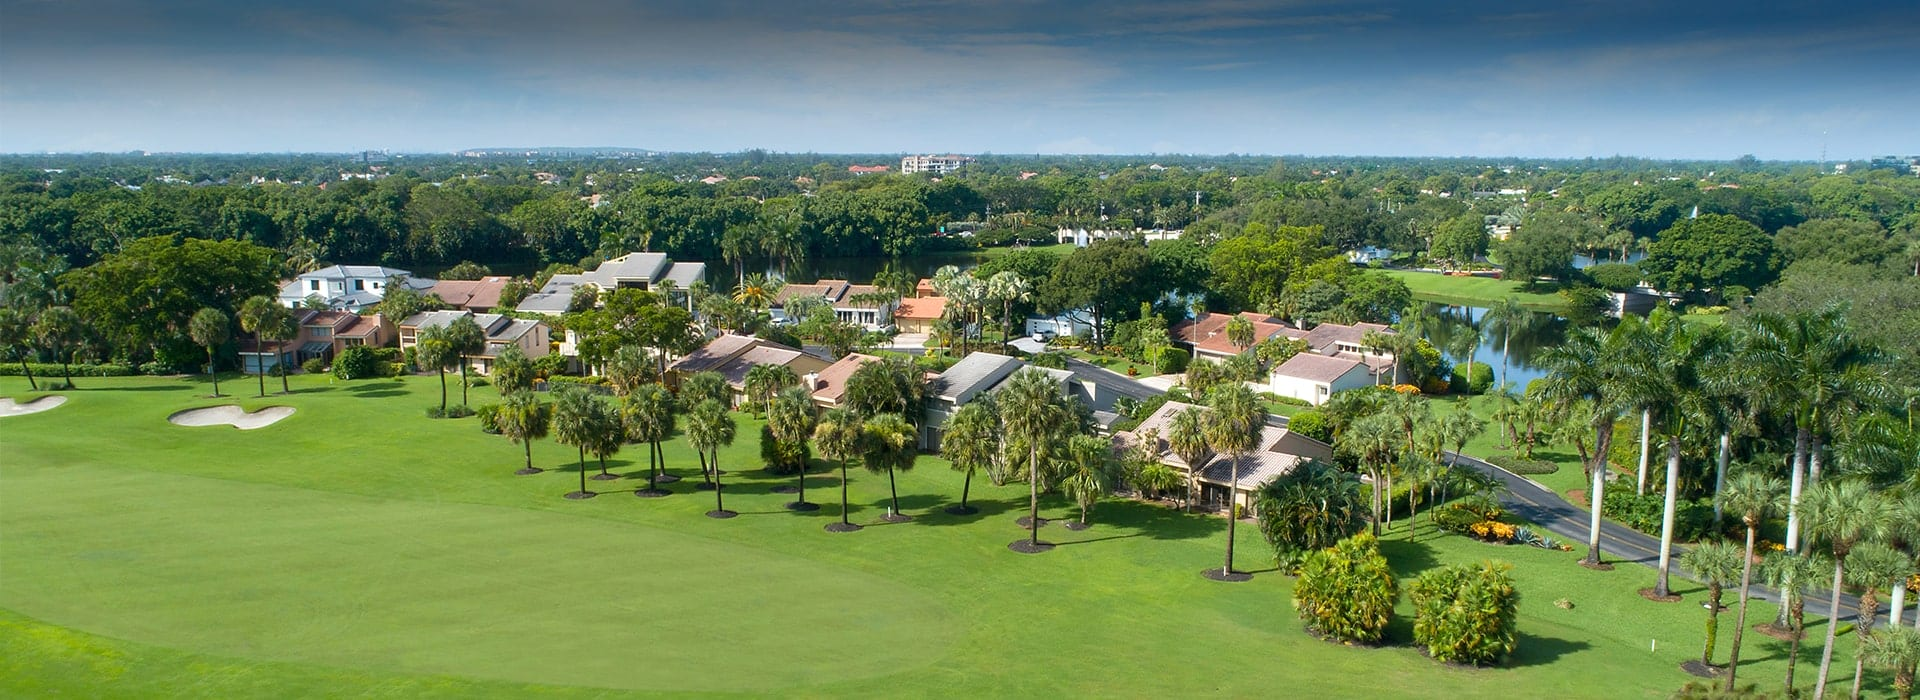 Cedarwood patio homes in Boca West with view of the golf course